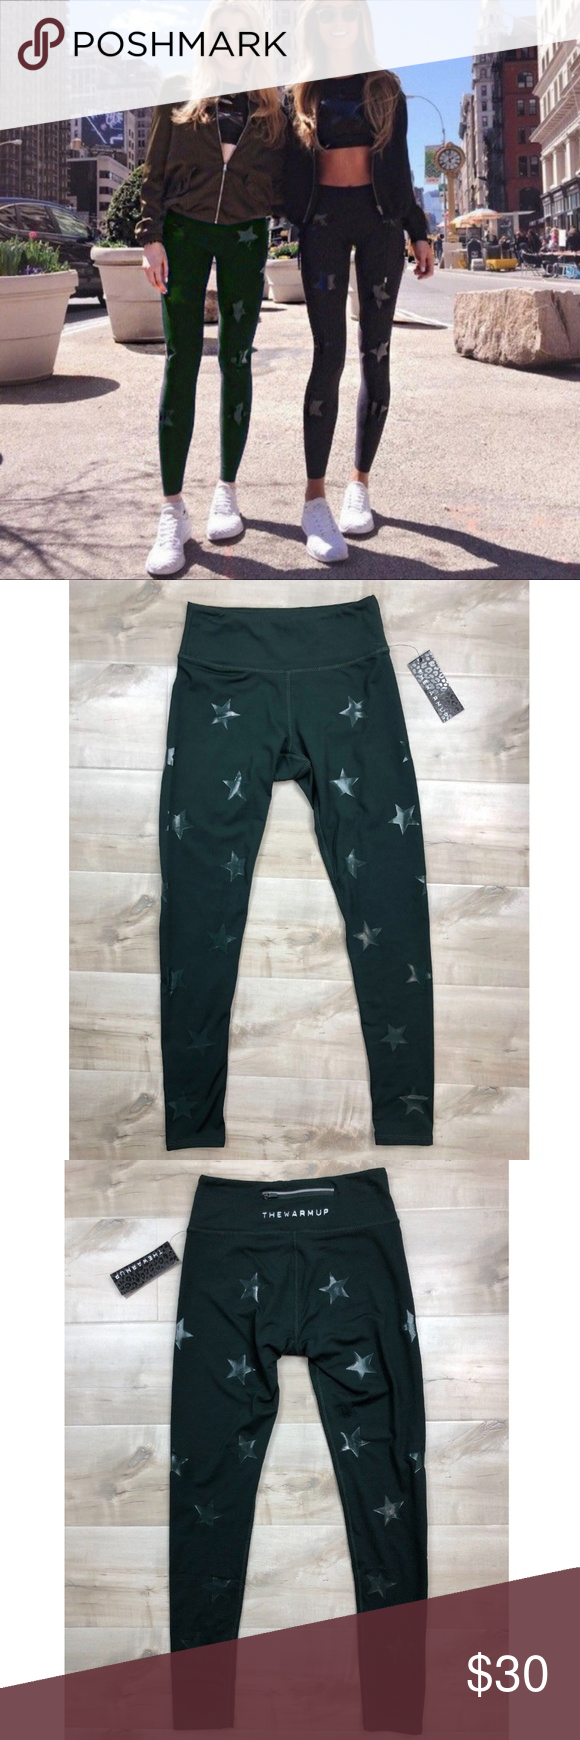 5d33221429824 NEW Jessica Simpson Army Green Star Ankle Leggings NEW Jessica Simpson  Workout Star Ankle Leggings Army